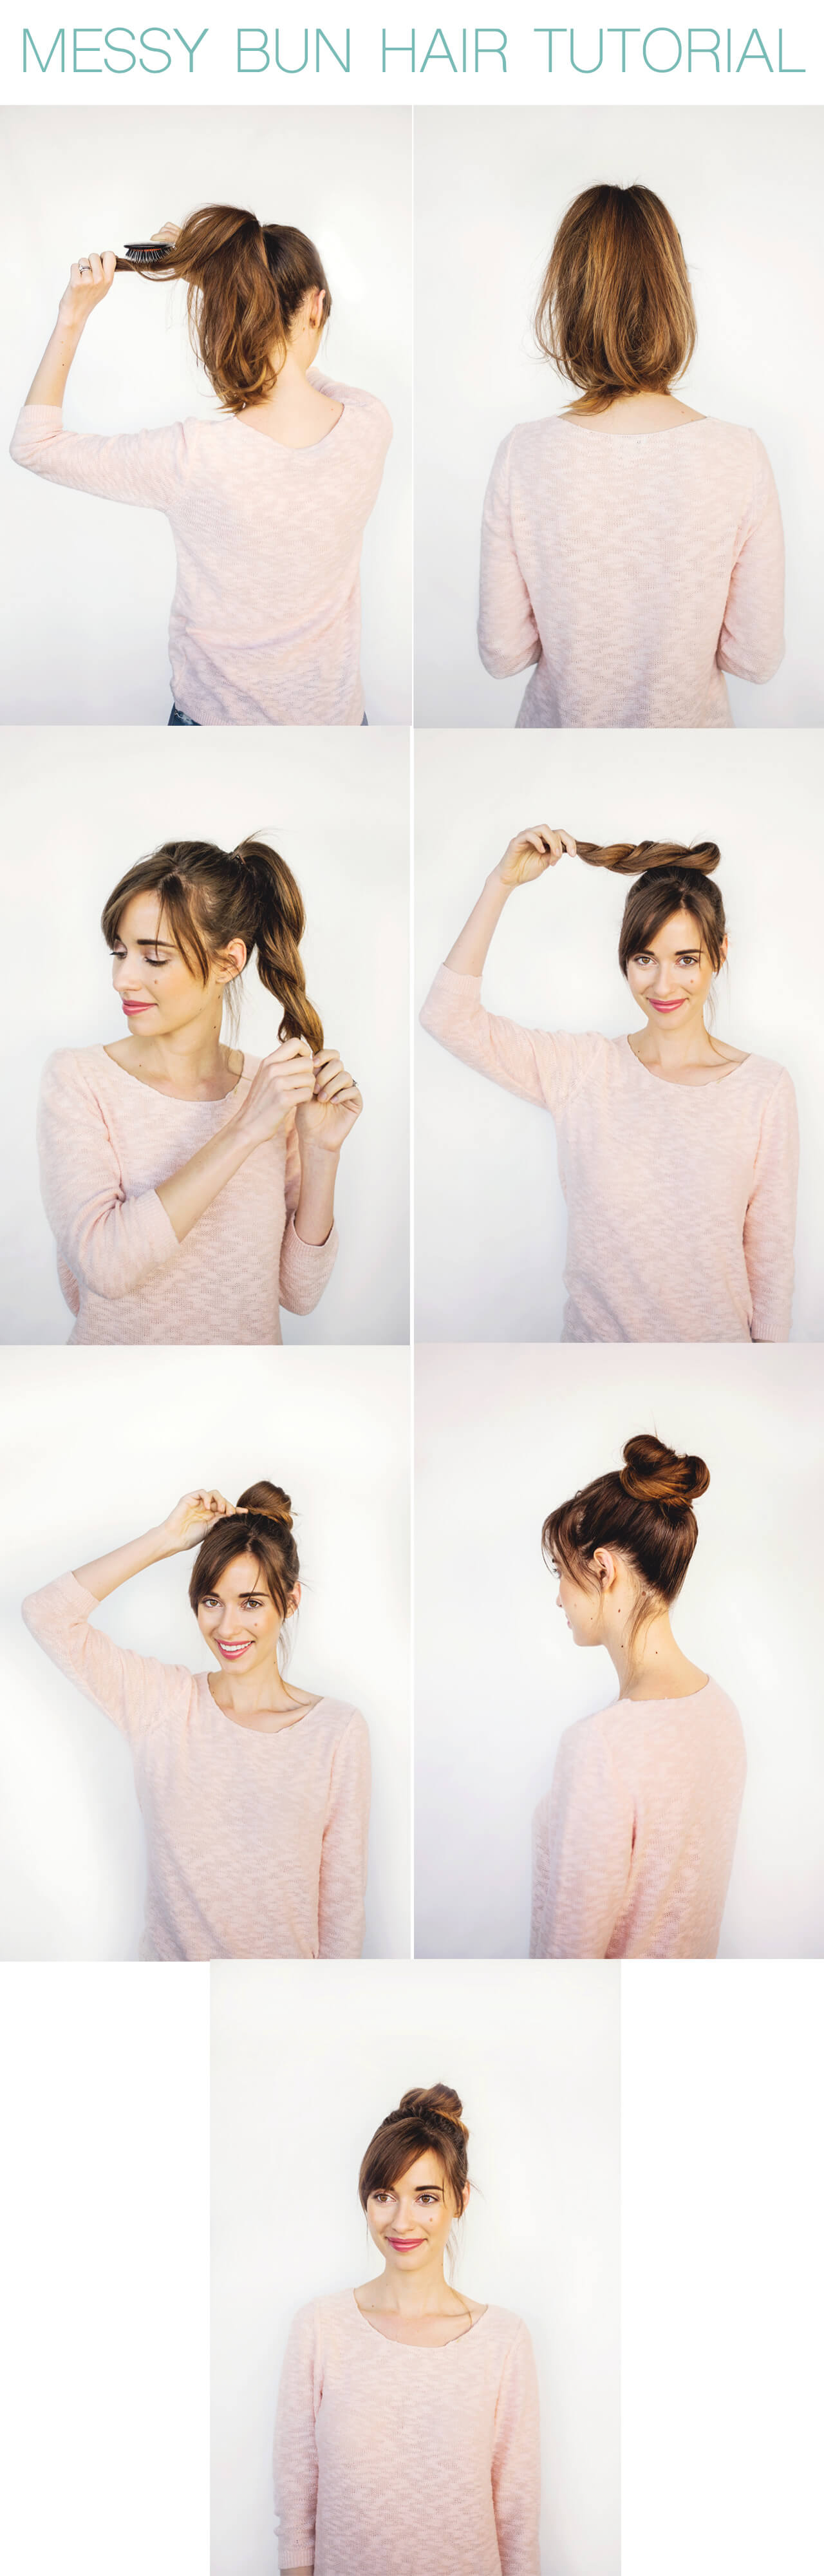 how to easily achieve a messy bun. click through for the hair tutorial!